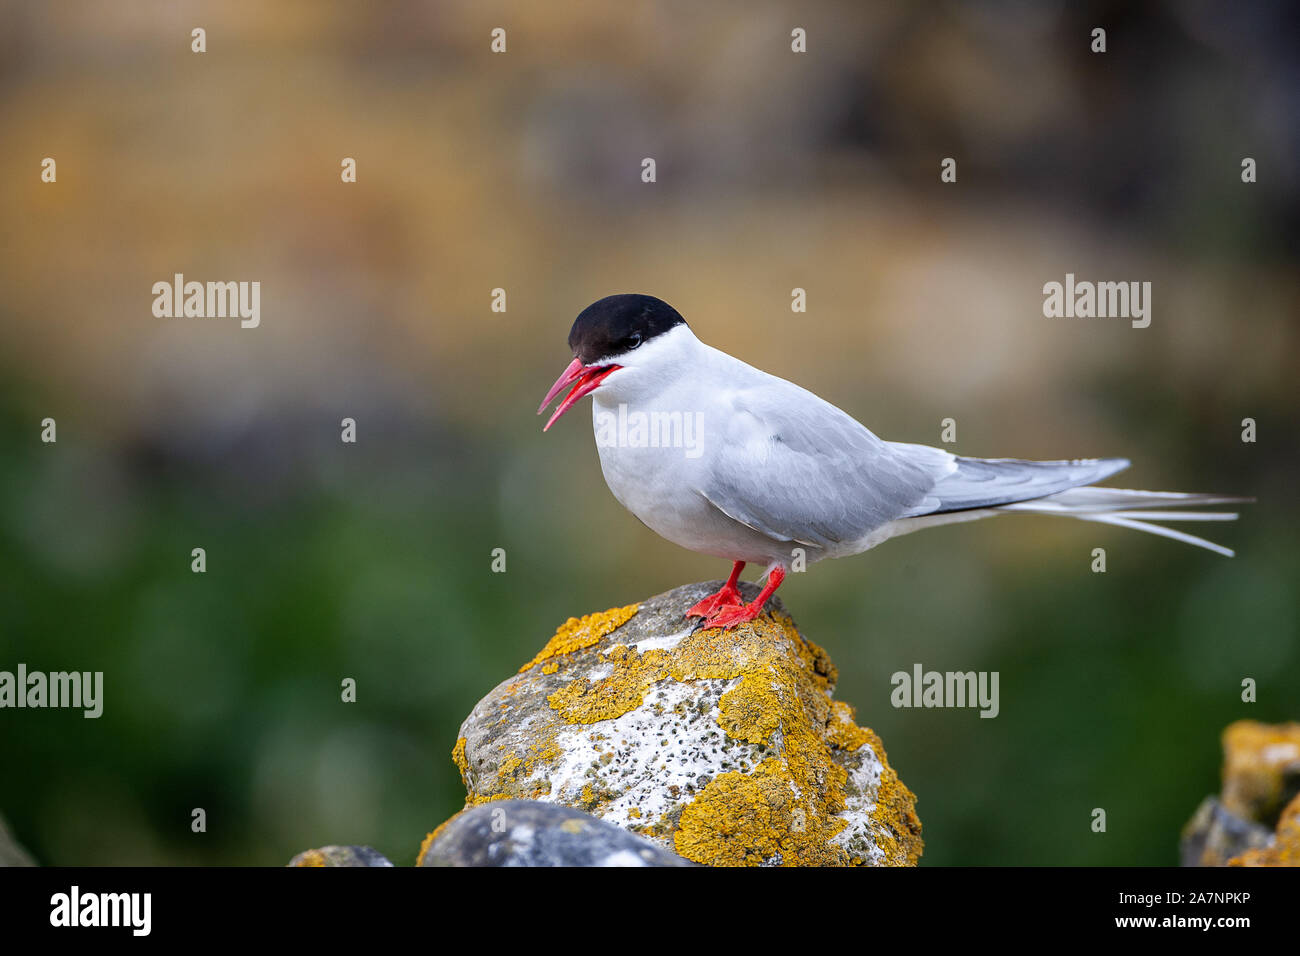 Arctic tern, (Sterna paradisaea), are mainly grey and white plumaged, with a red/orangish beak and feet, white forehead, a black nape and crown. Stock Photo